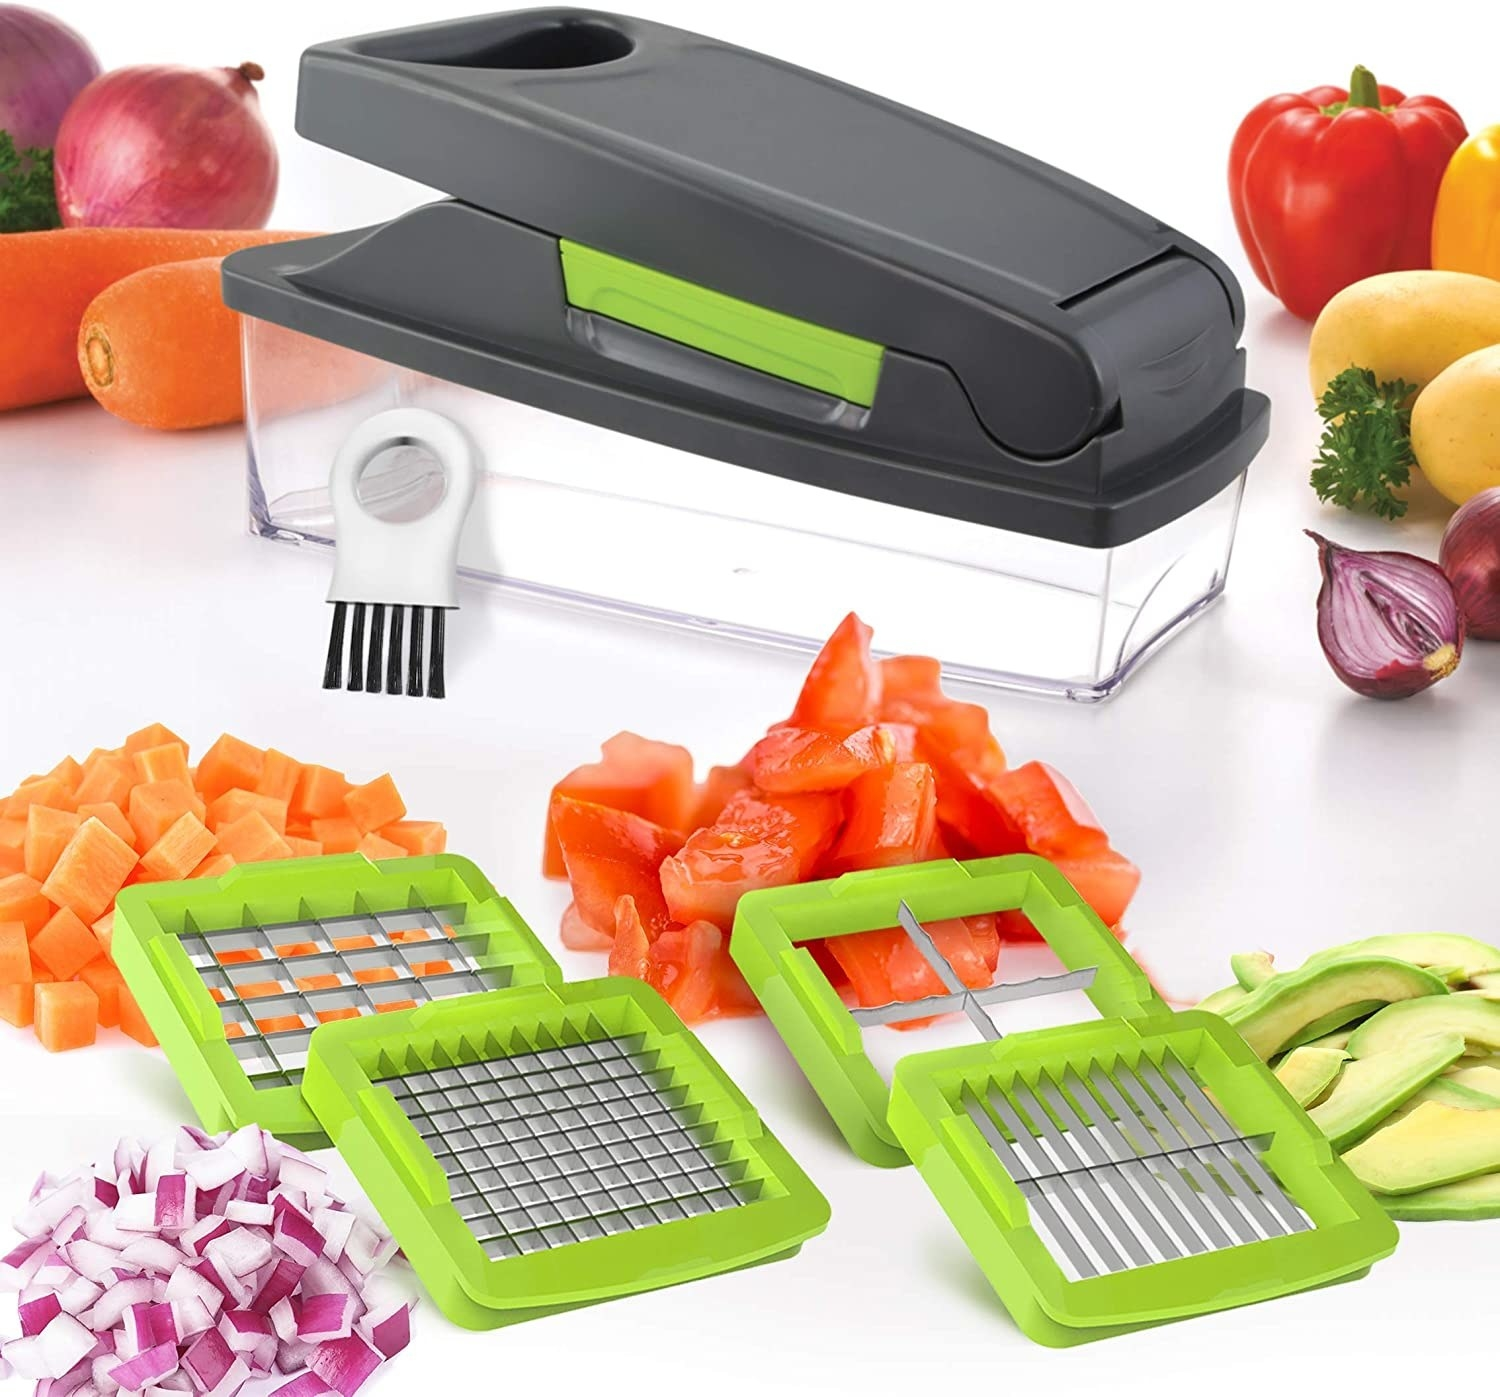 The vegetable chopper and its four blades